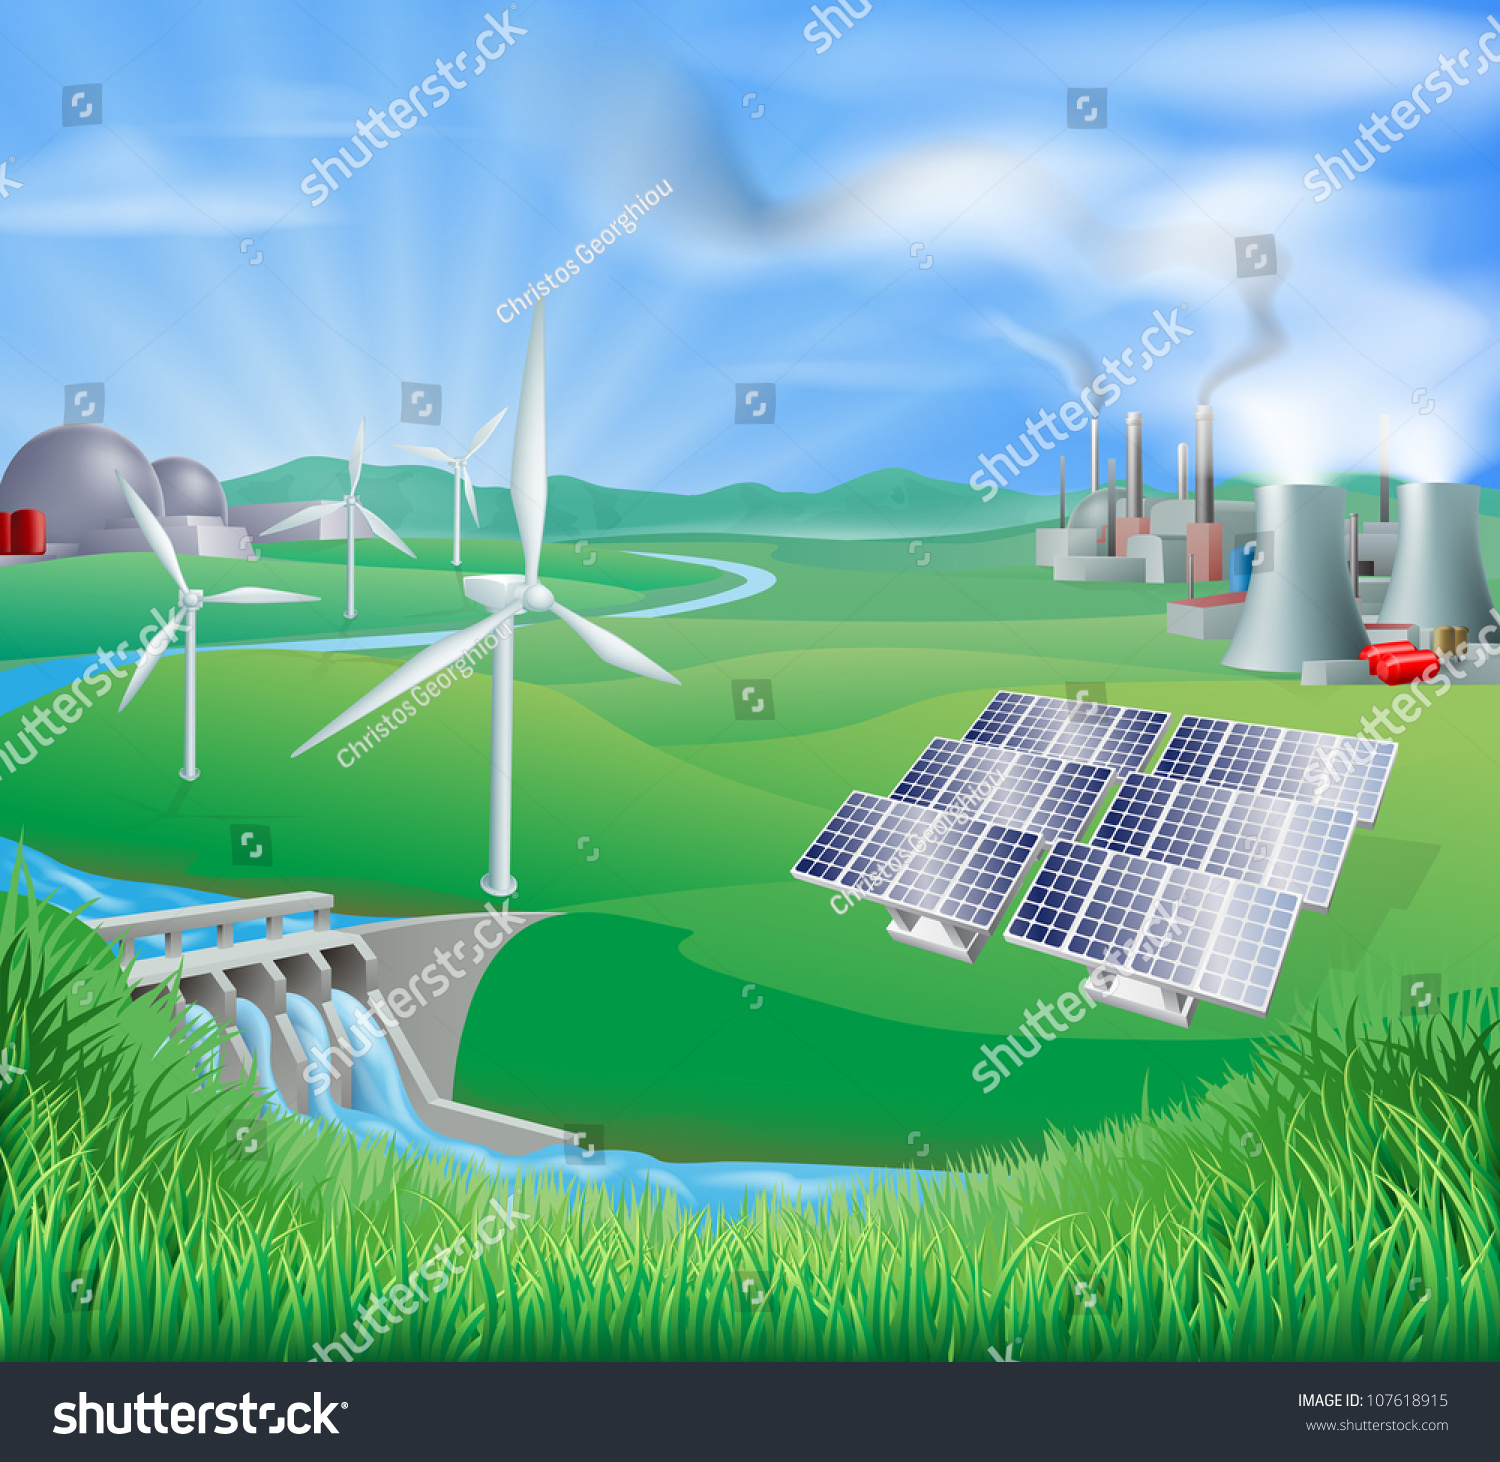 do alternative sources of energy have a future argumentative essay alternative energy topics millicent rogers museum different power generation nuclear fossil fuel coal renewable save to